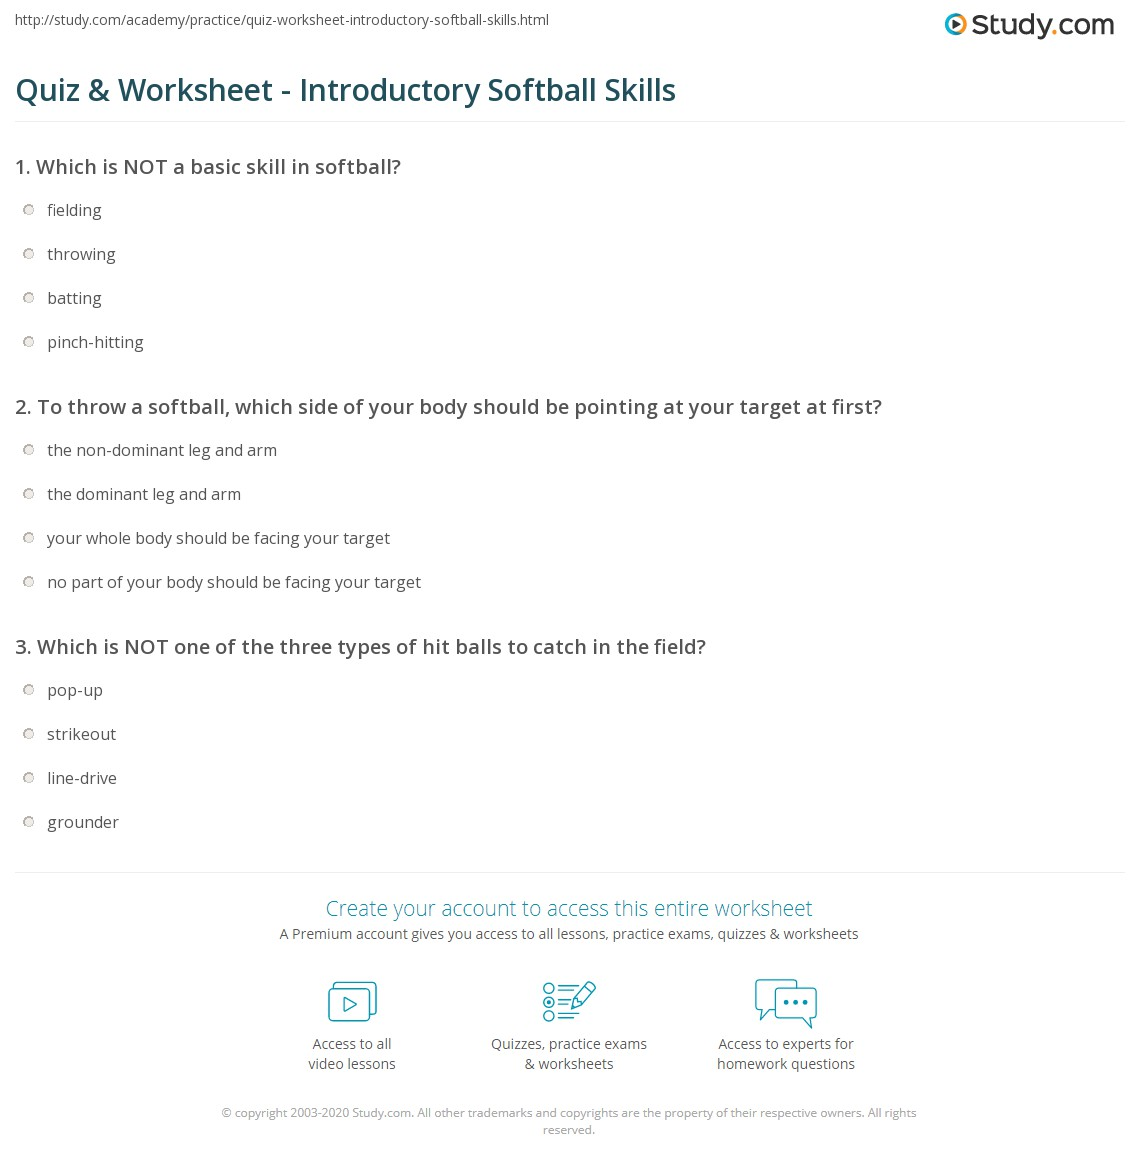 quiz worksheet introductory softball skills. Black Bedroom Furniture Sets. Home Design Ideas